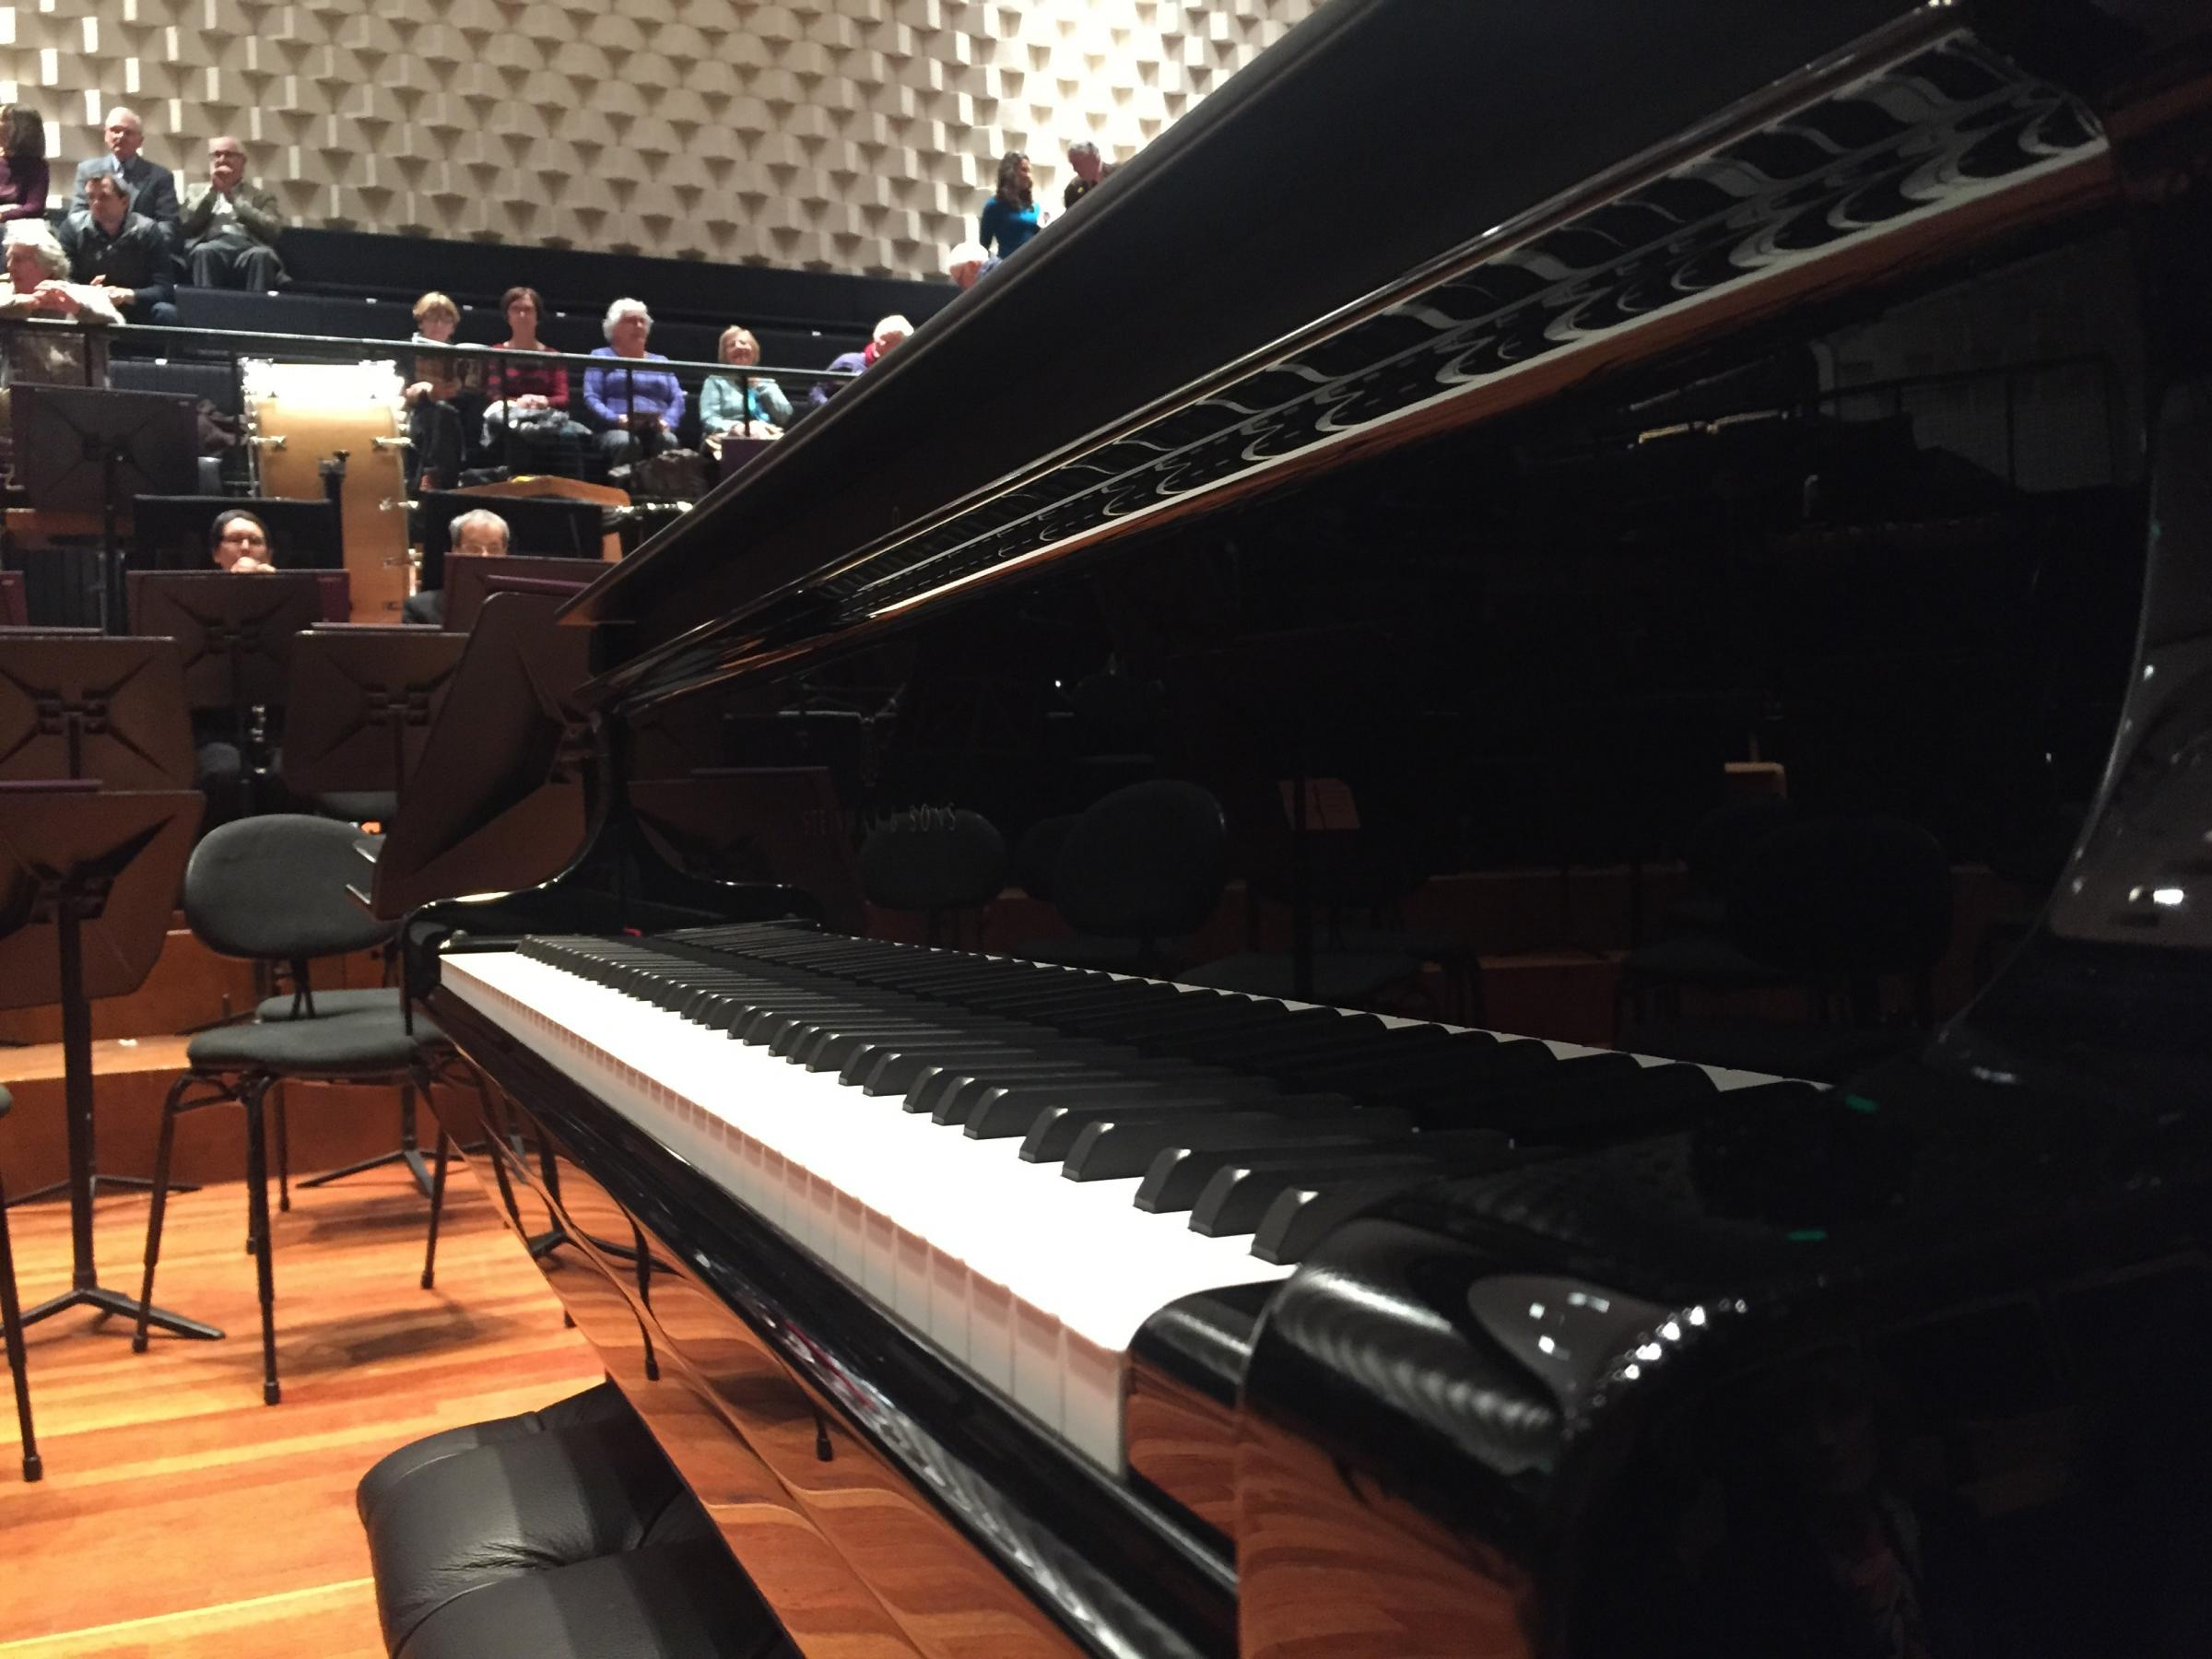 The BSO's new £120,000 Steinway